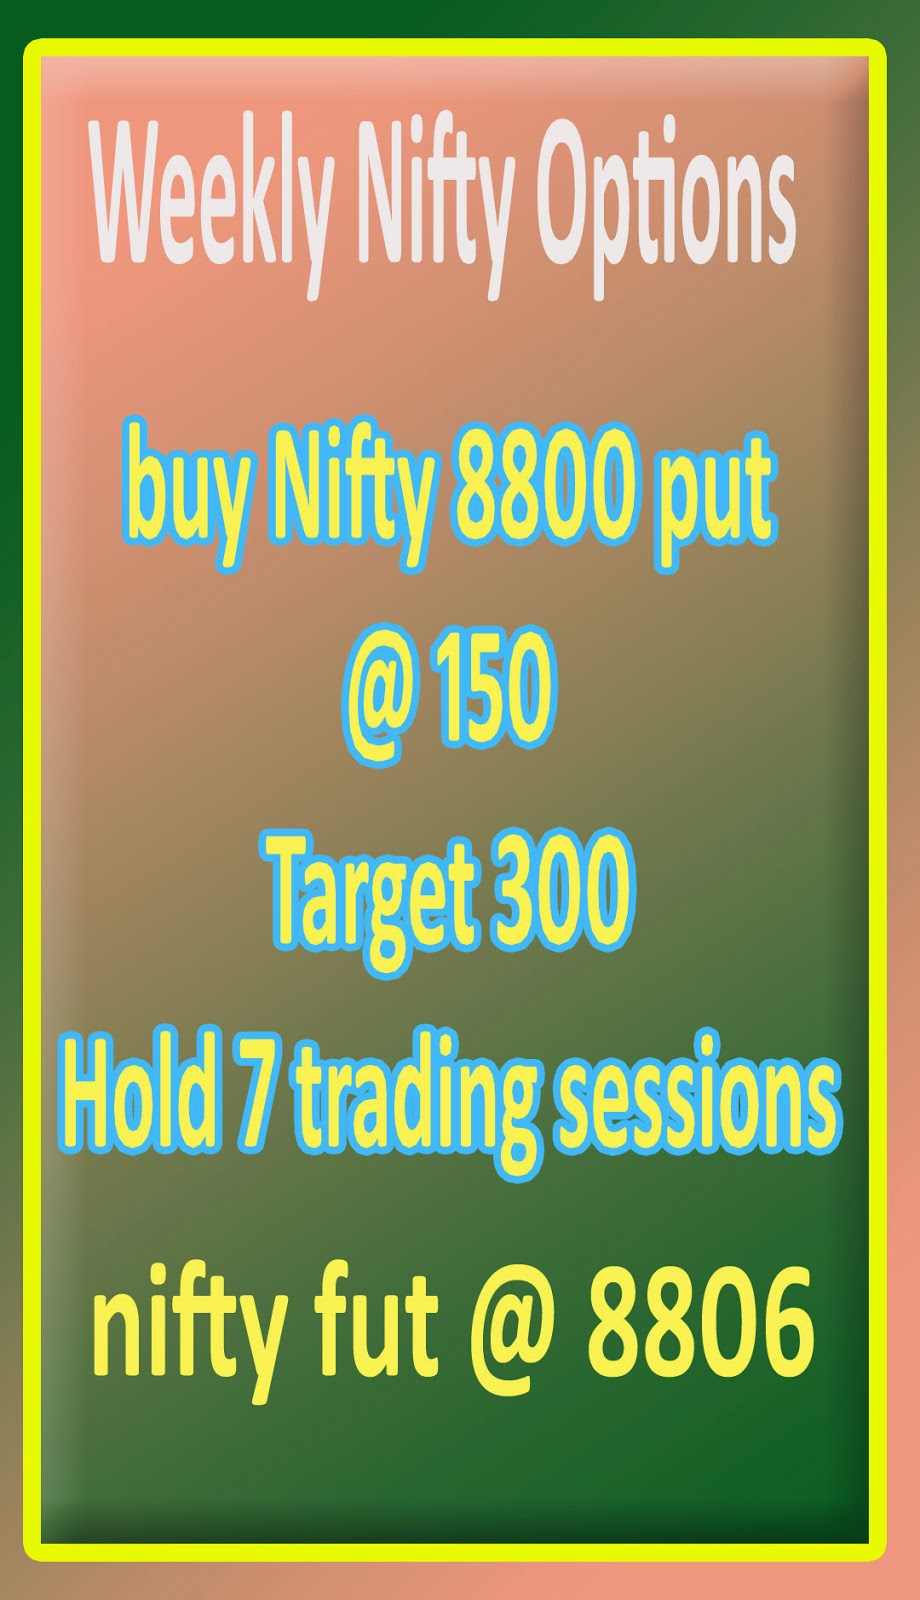 Nifty and stock options complaints